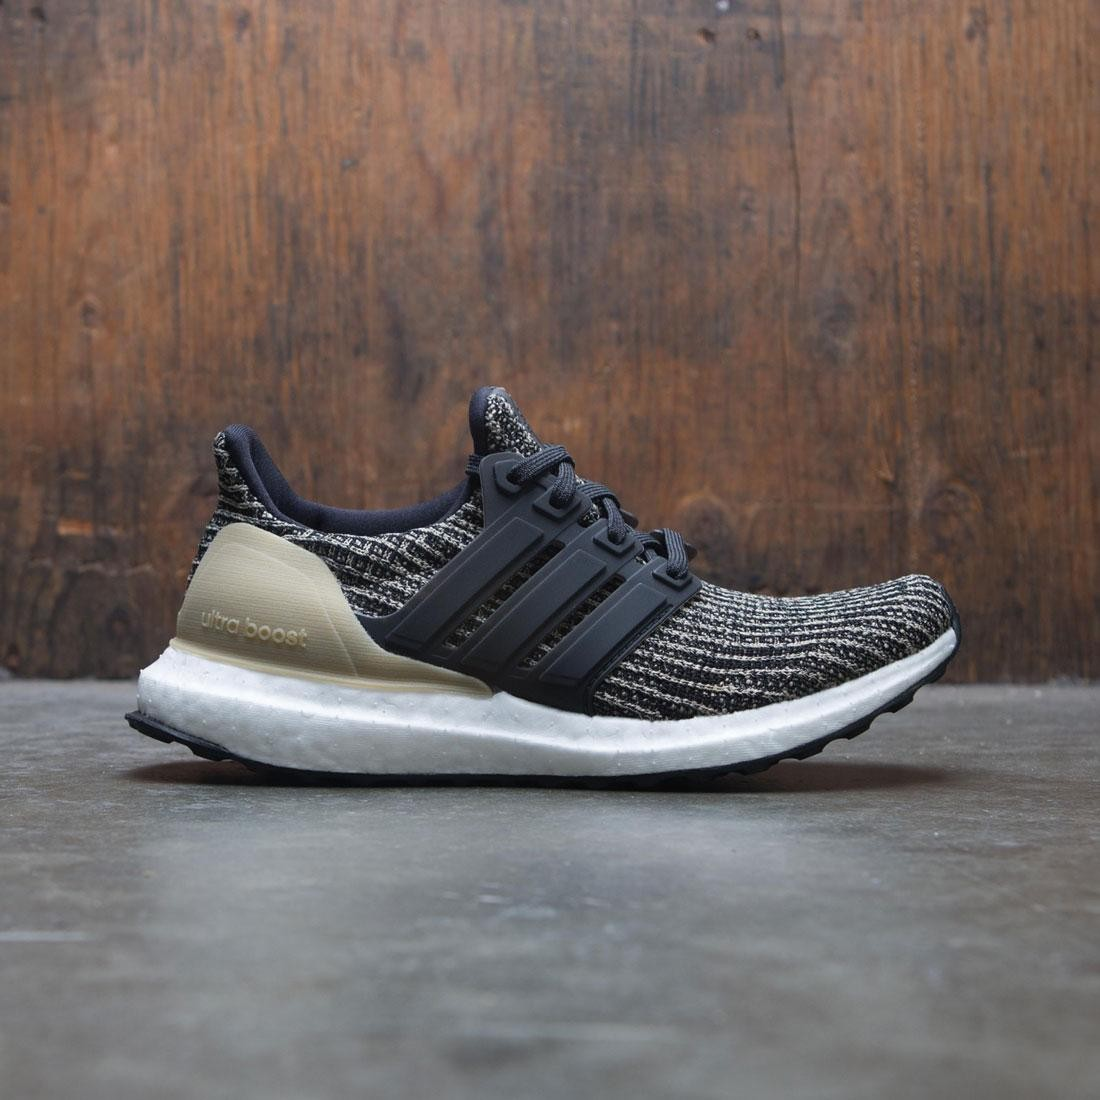 44785c3b9ae Adidas Big Kids UltraBOOST J black core black raw gold